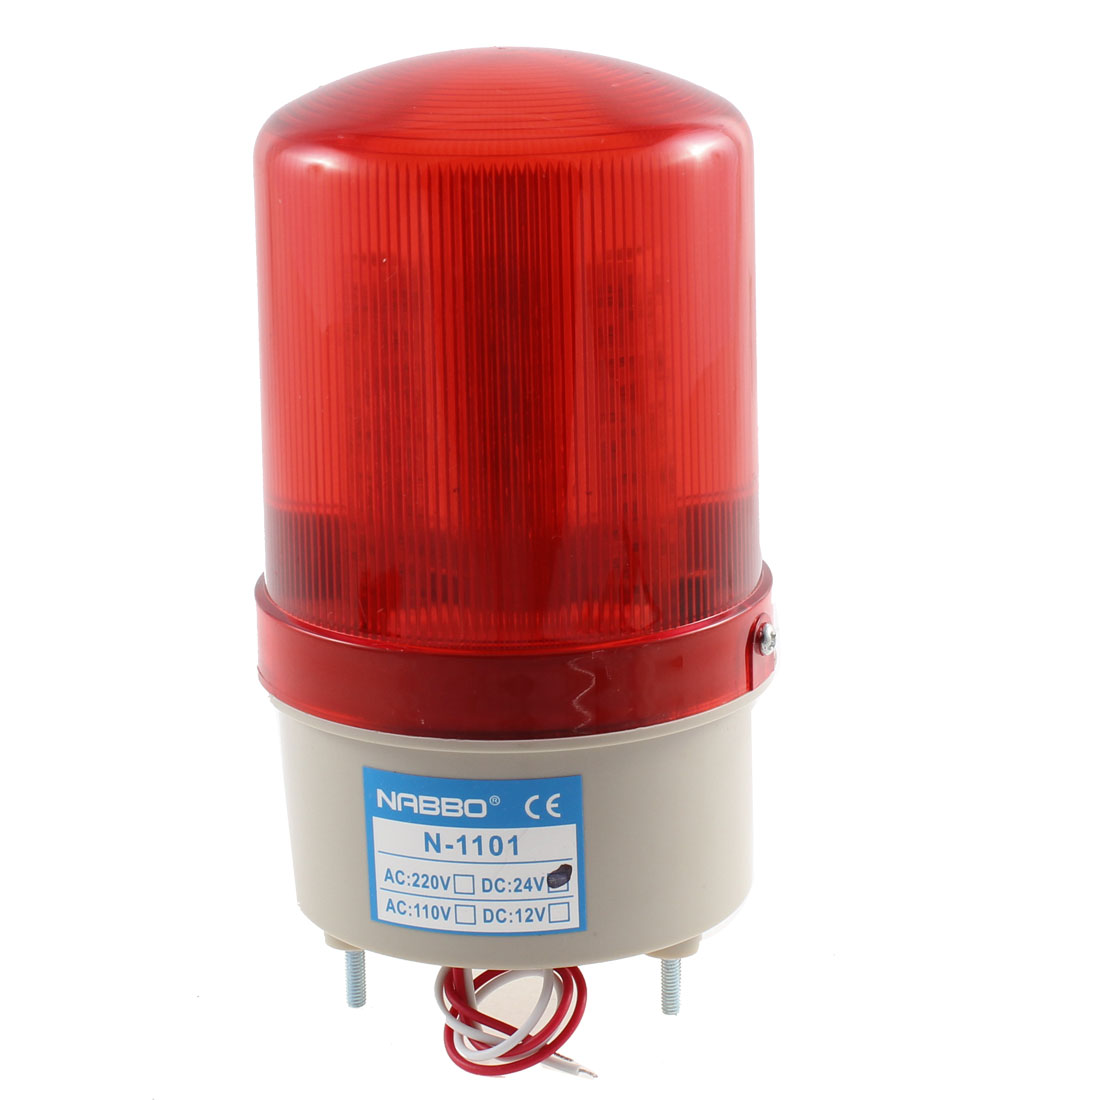 DC 24V Industrial Alarm System Red Rotary Warning Signal Light Lamp N-1101